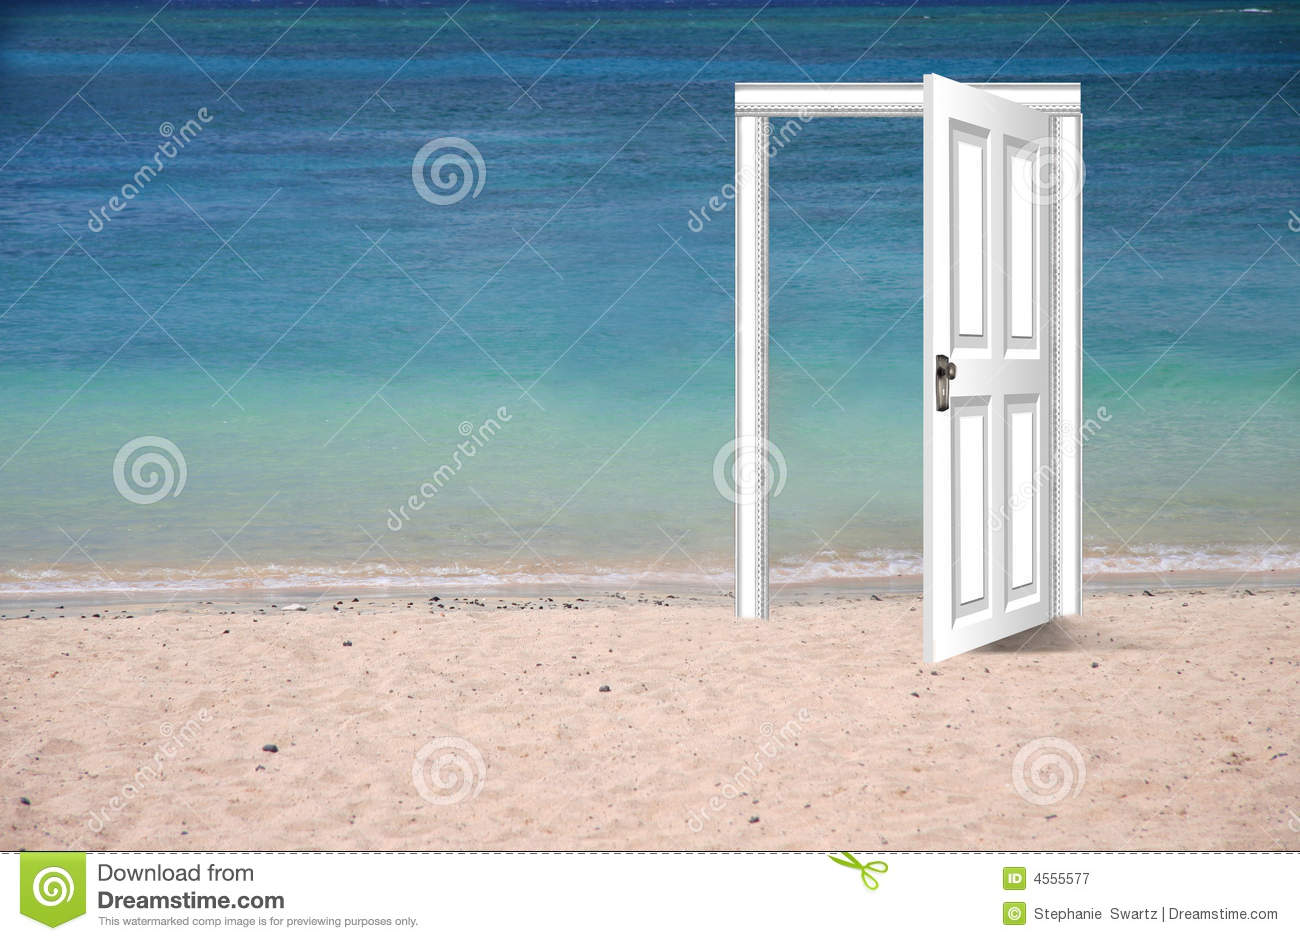 & Beach Door Stock Photo 4555577 - Megapixl pezcame.com